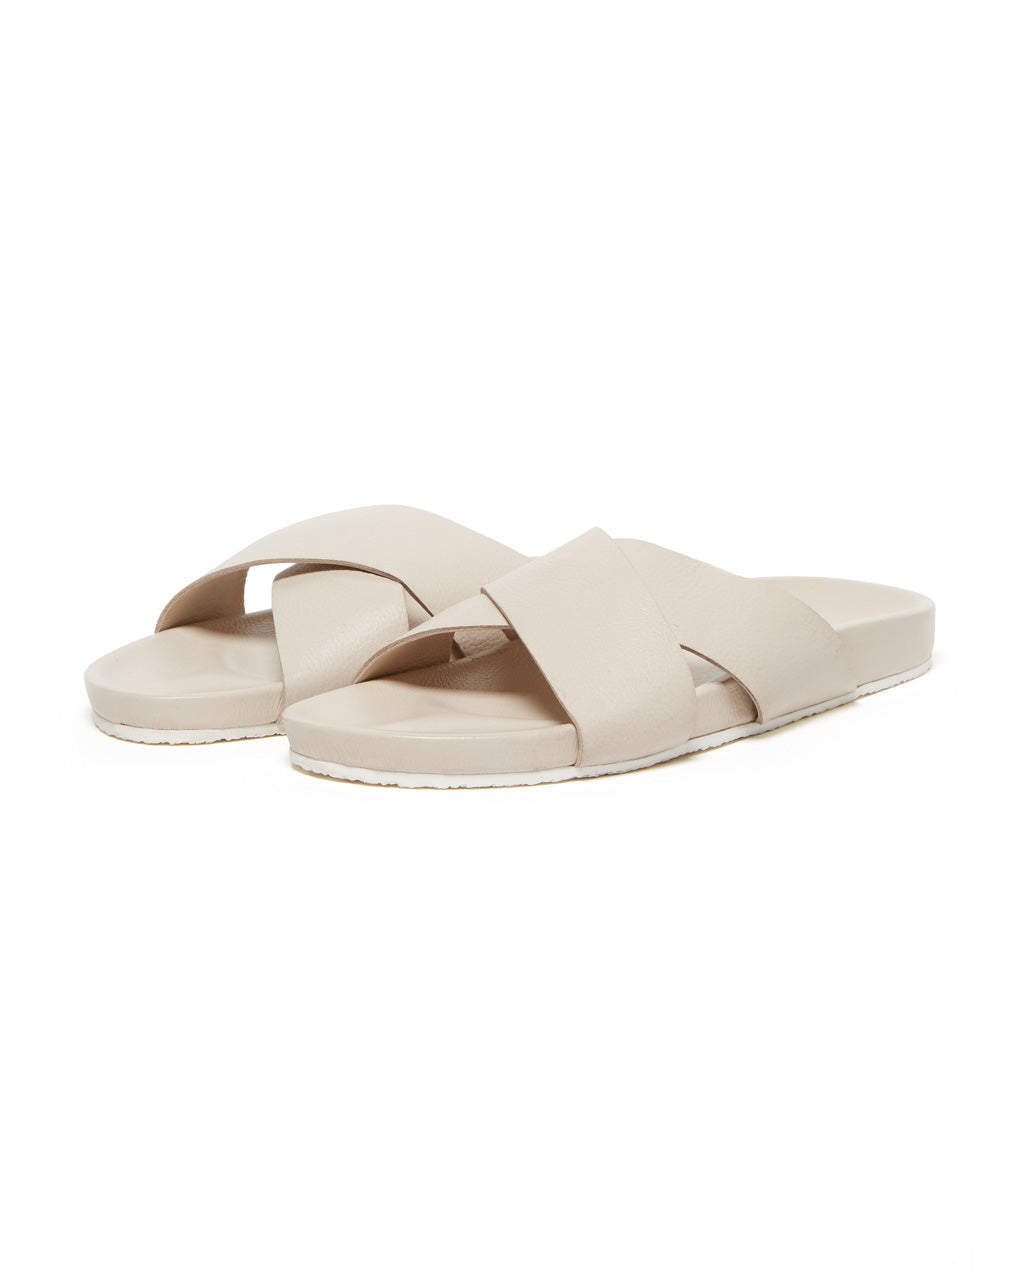 Off white leather sandals with double strap feature